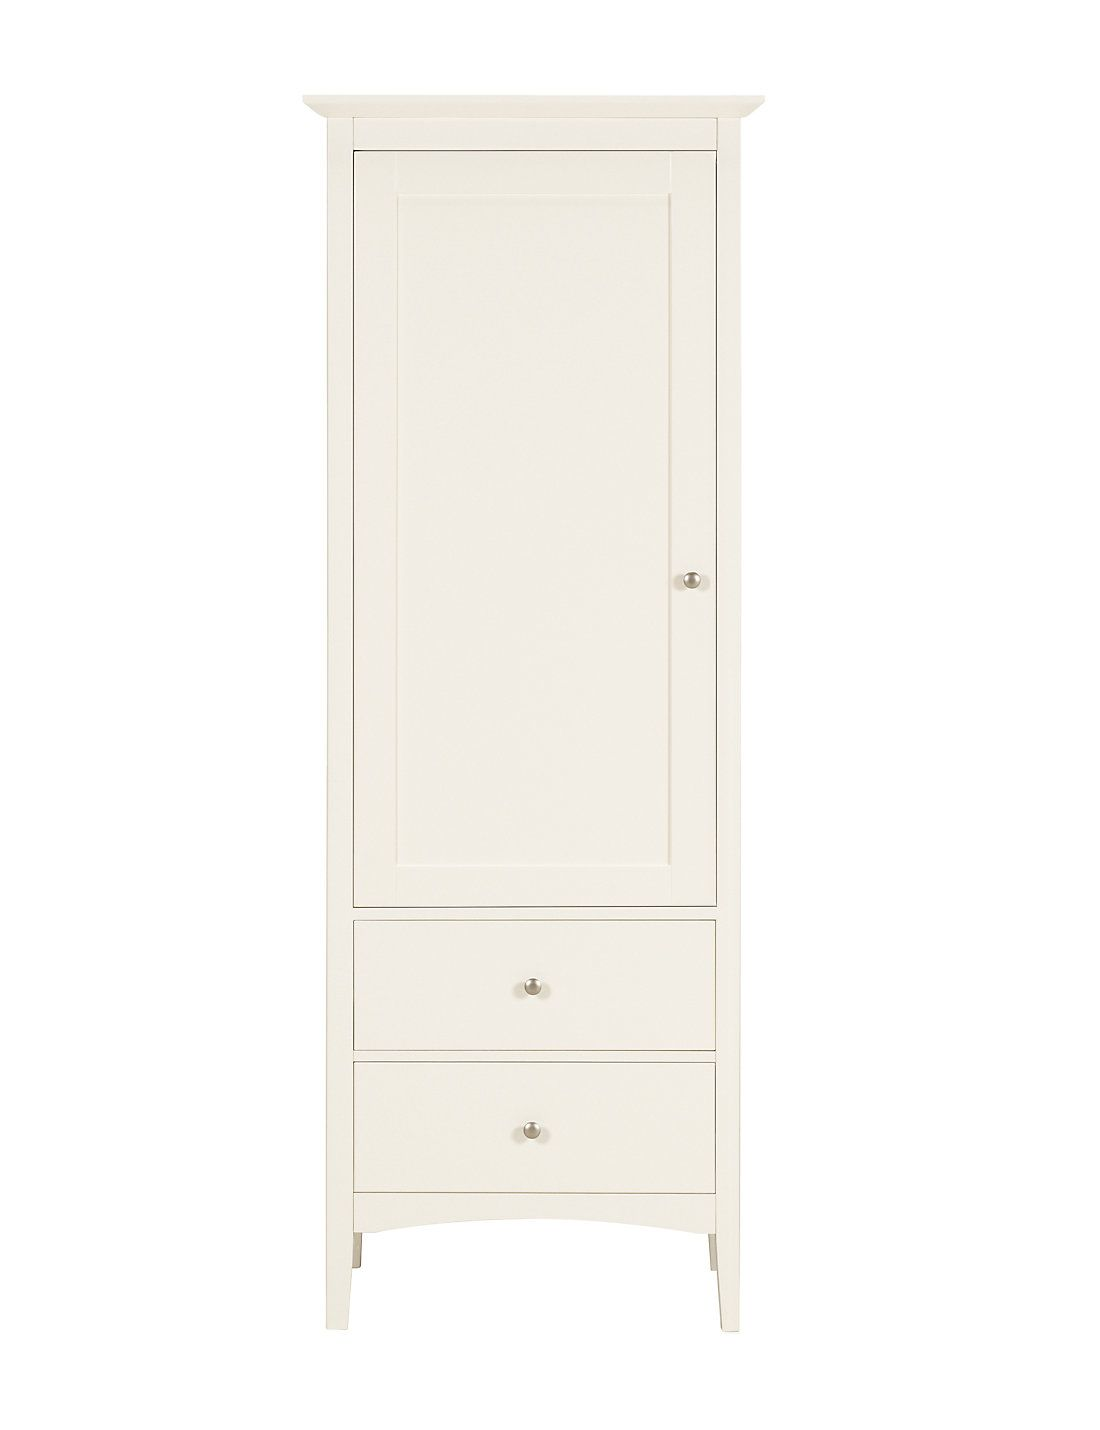 Fabulous Image Result For Ms Hastings Single Wardrobe Decoration Home Interior And Landscaping Oversignezvosmurscom